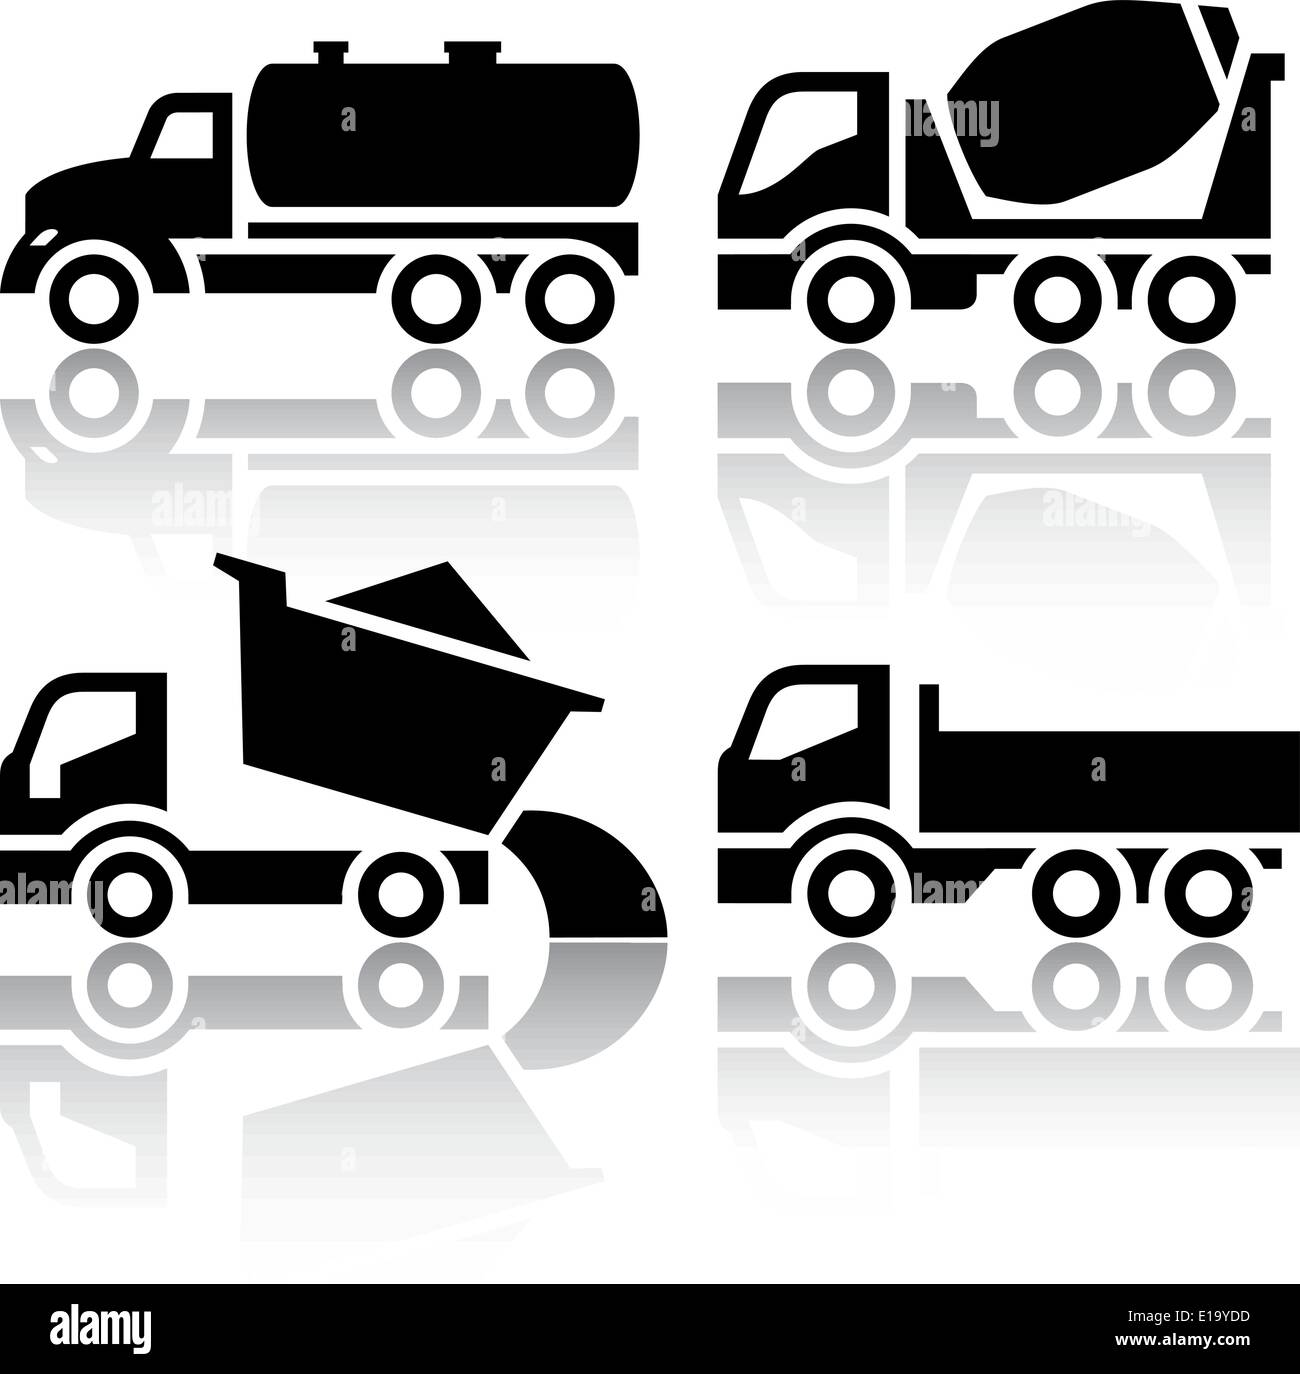 Concrete Mixer Truck Cut Out Stock Images & Pictures - Alamy